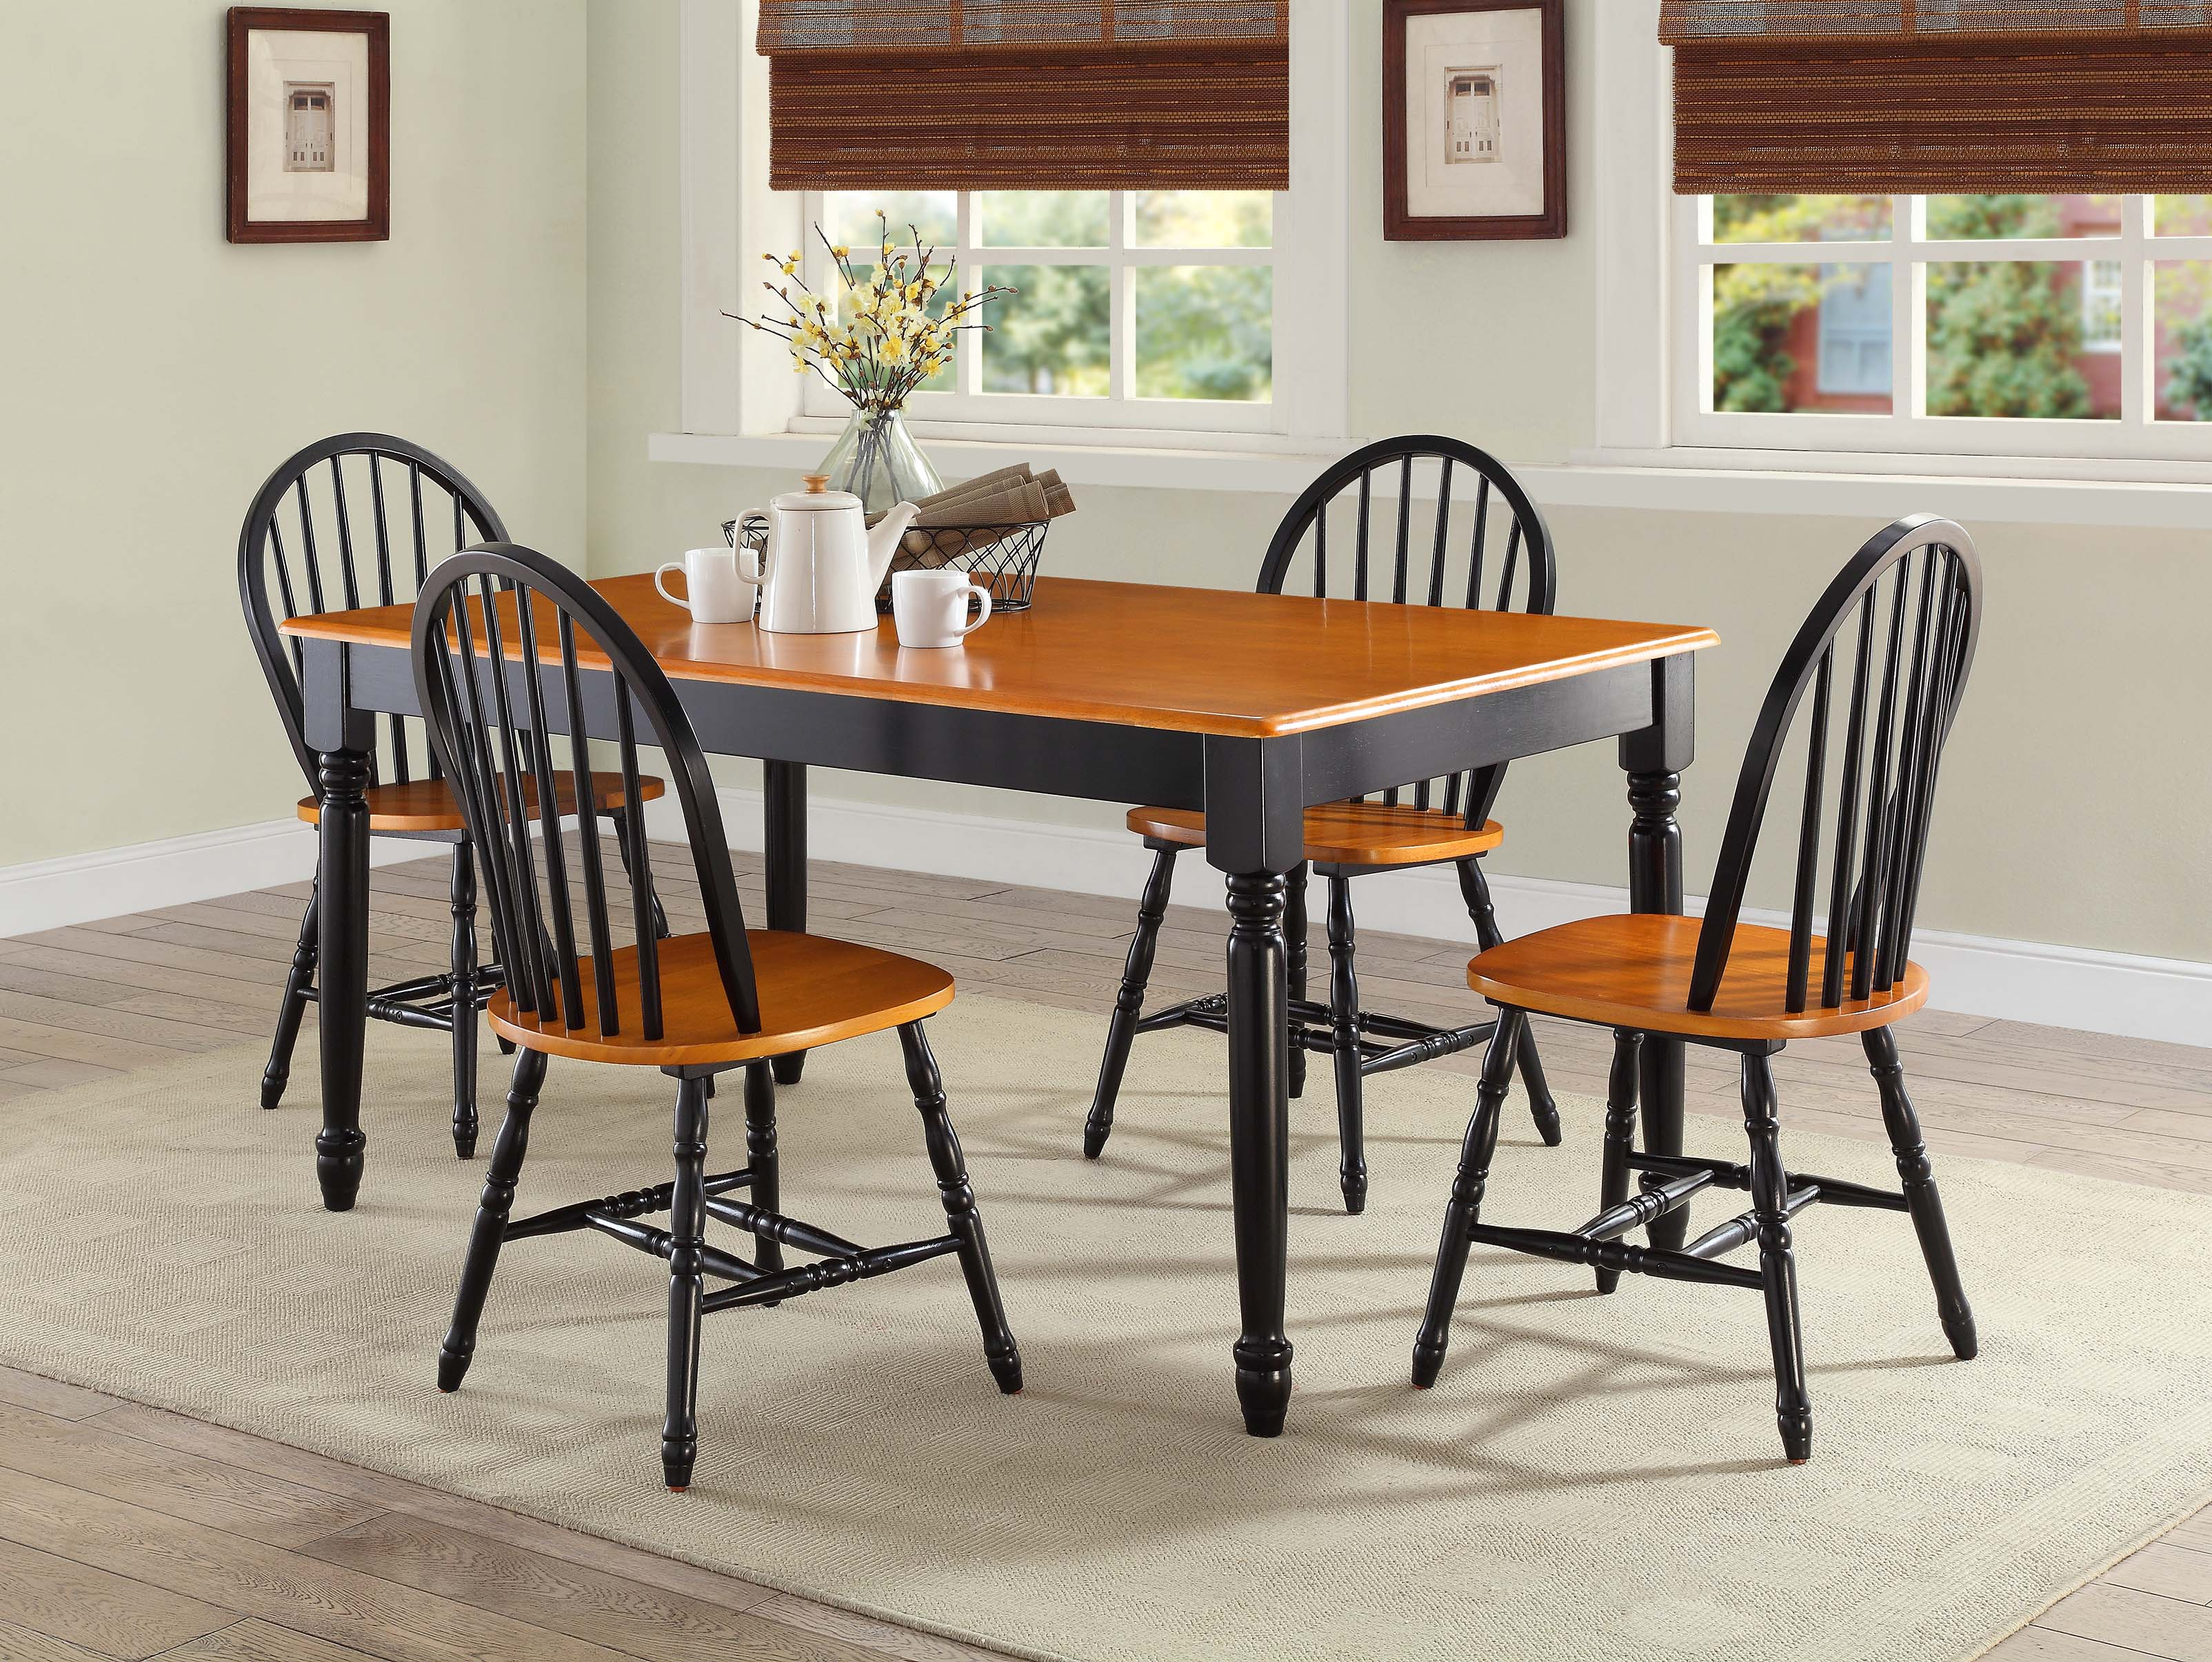 Better Homes and Gardens Autumn Lane Farmhouse Dining Table Black and Oak 703062492133  eBay